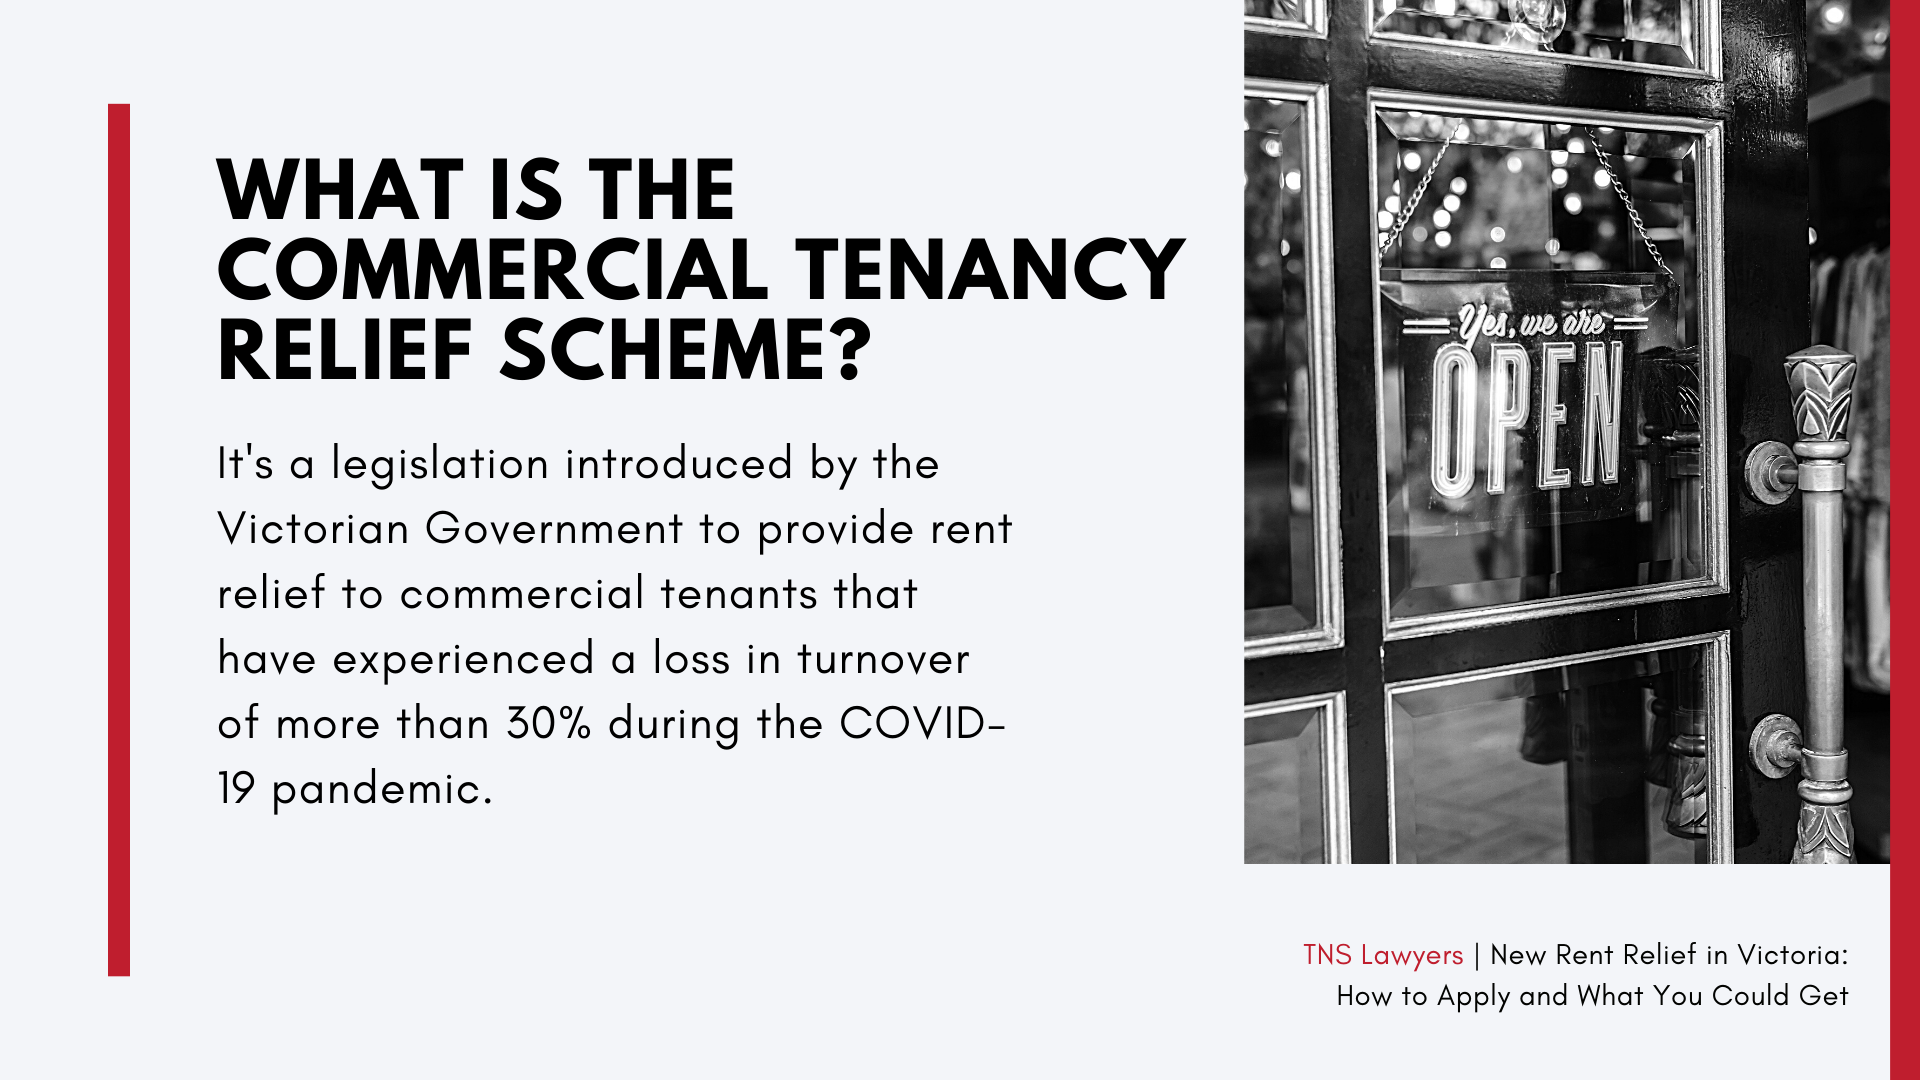 what is the commercial tenancy relief scheme in Victoria